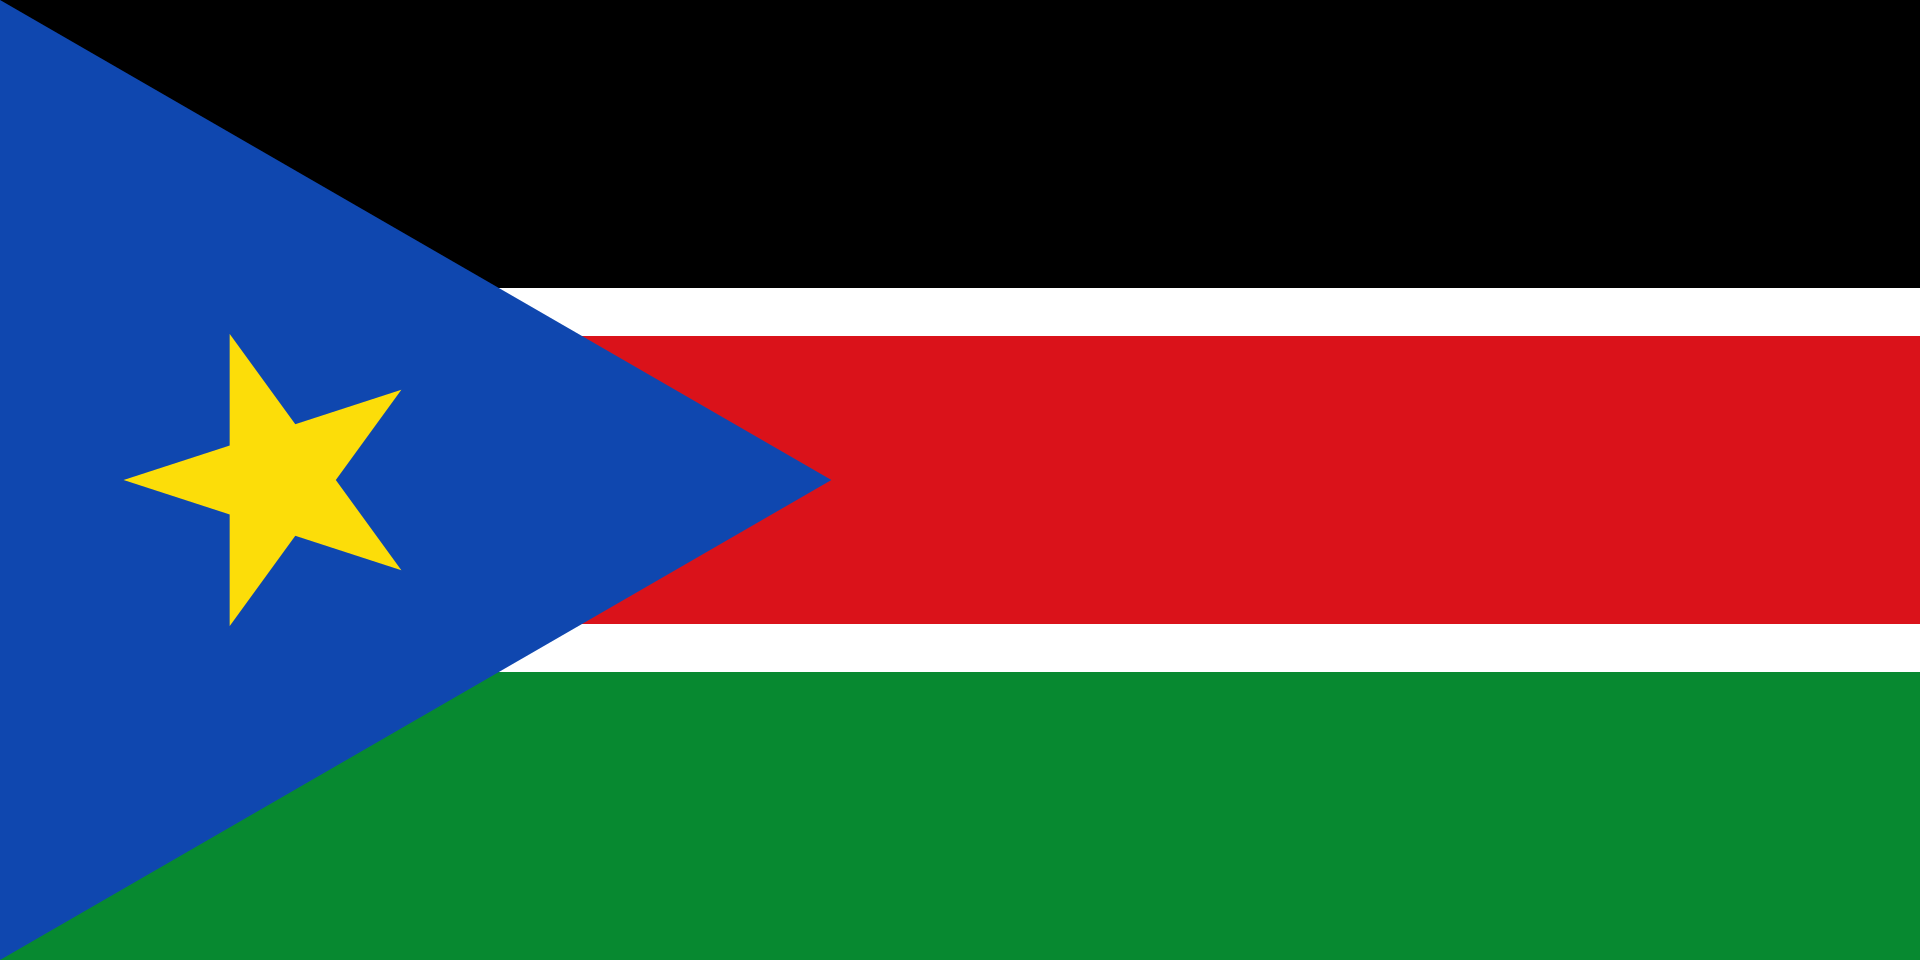 South Sudan secedes from Sudan, per the result of the independence referendum held in January.